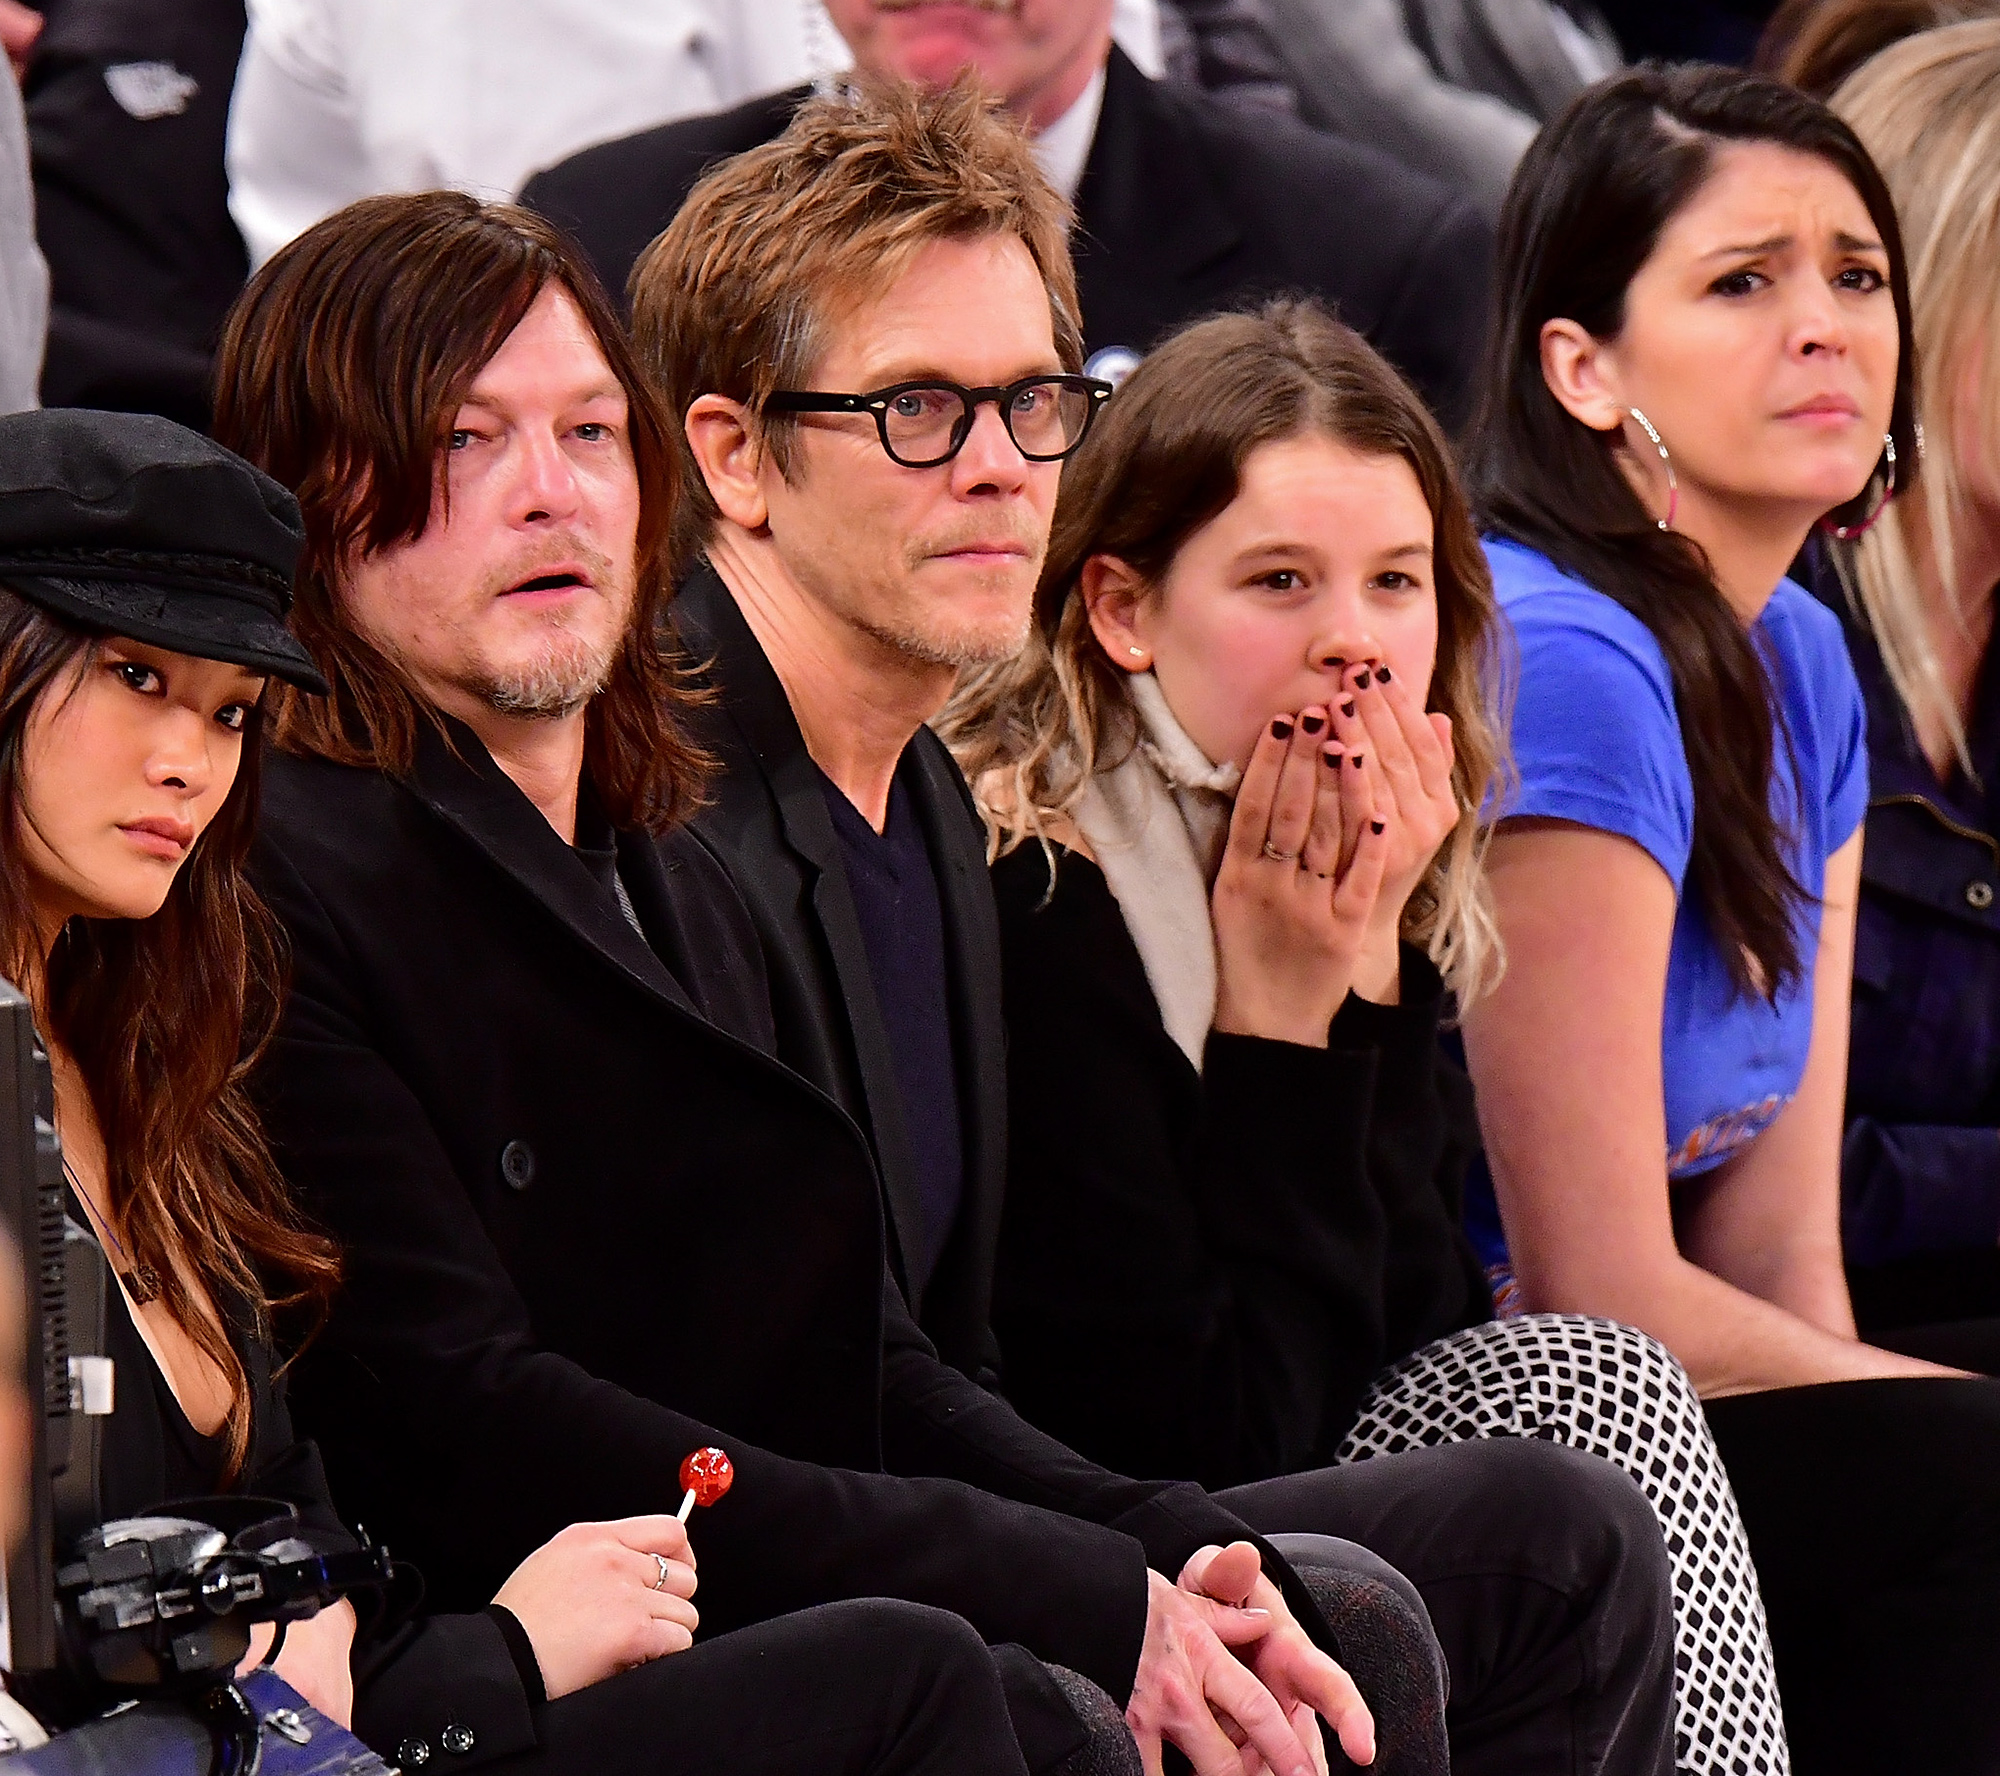 Celebrities Attend New Orleans Pelicans Vs. New York Knicks - January 9, 2017